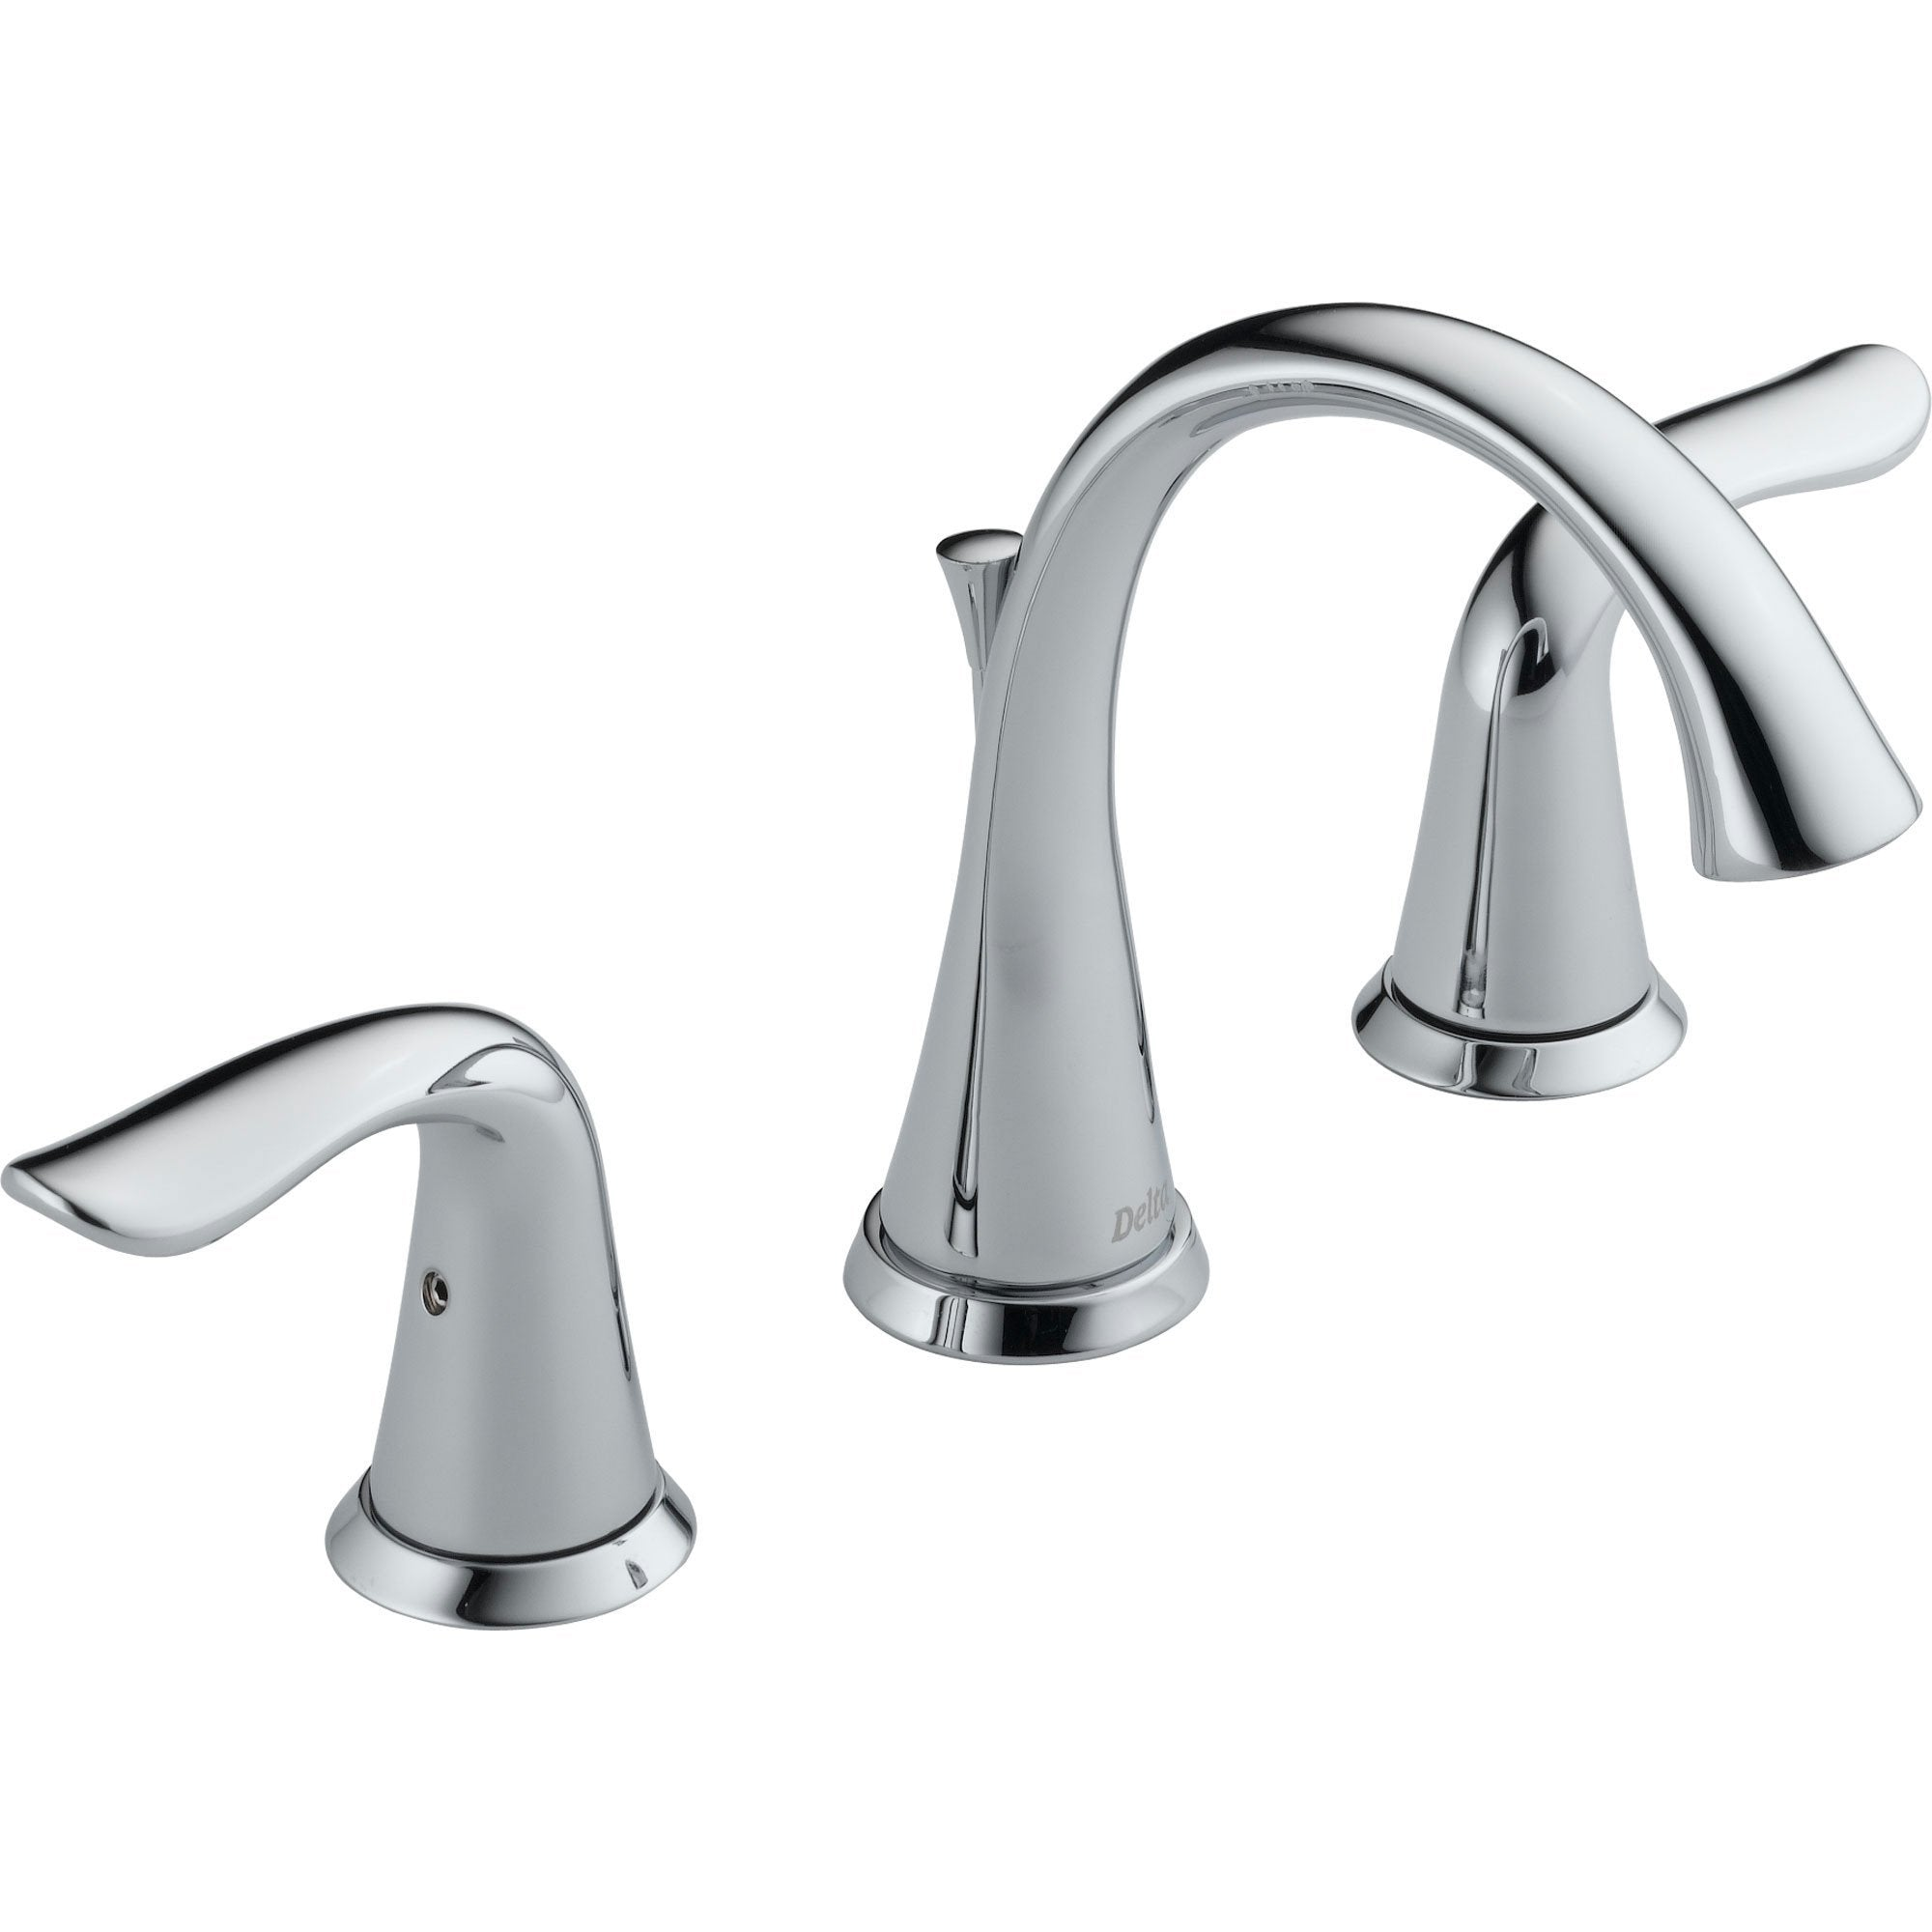 "Delta Lahara 4-16"" Chrome Finish Mini-Widespread Bathroom Faucet 572928"